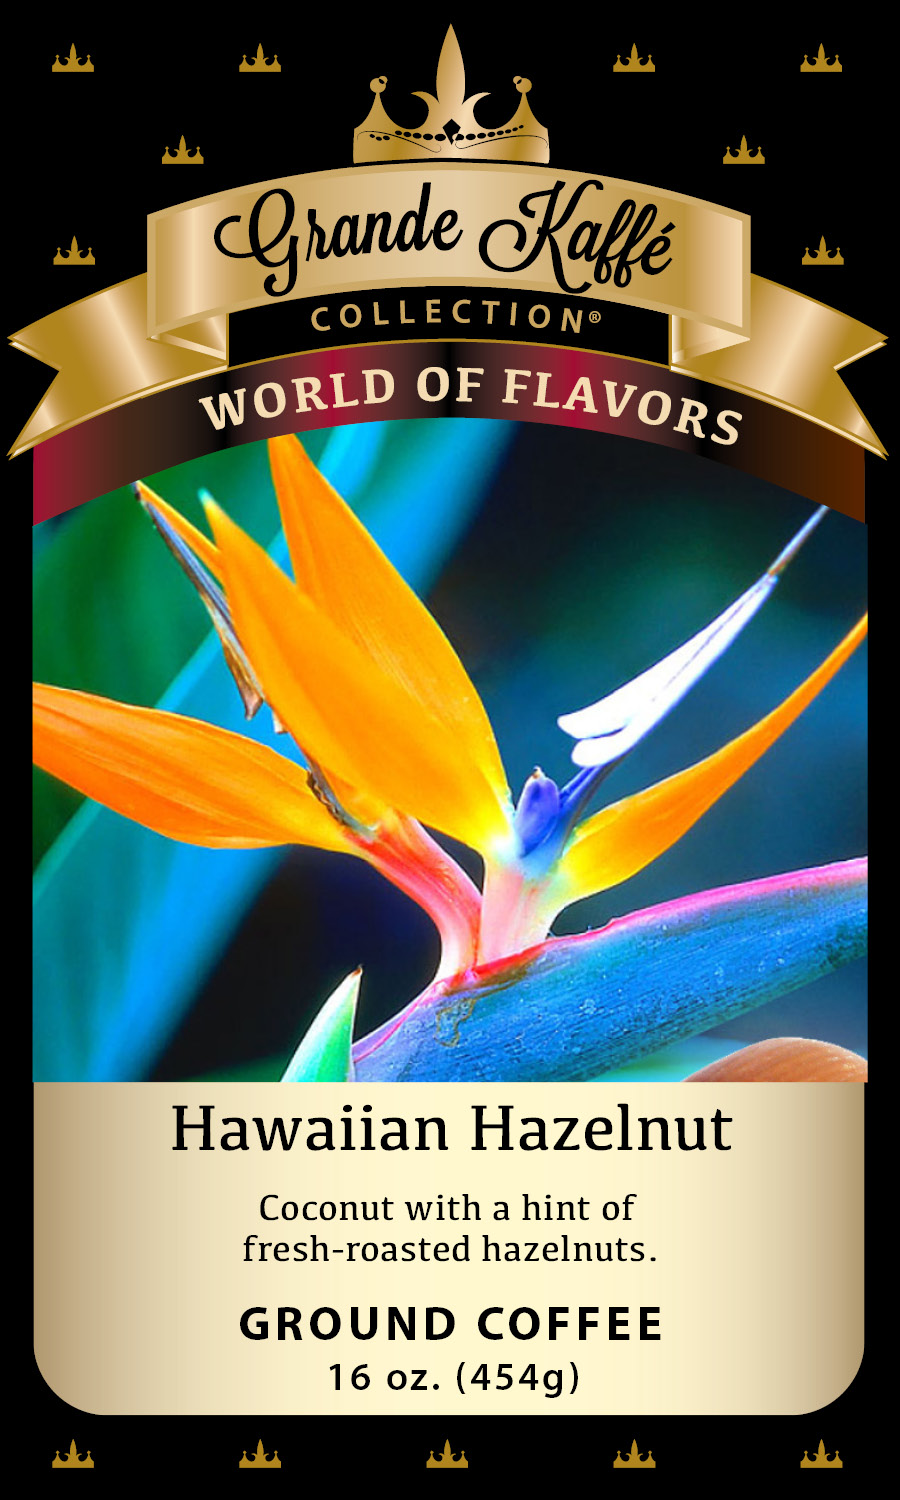 Hawaiian Hazelnut